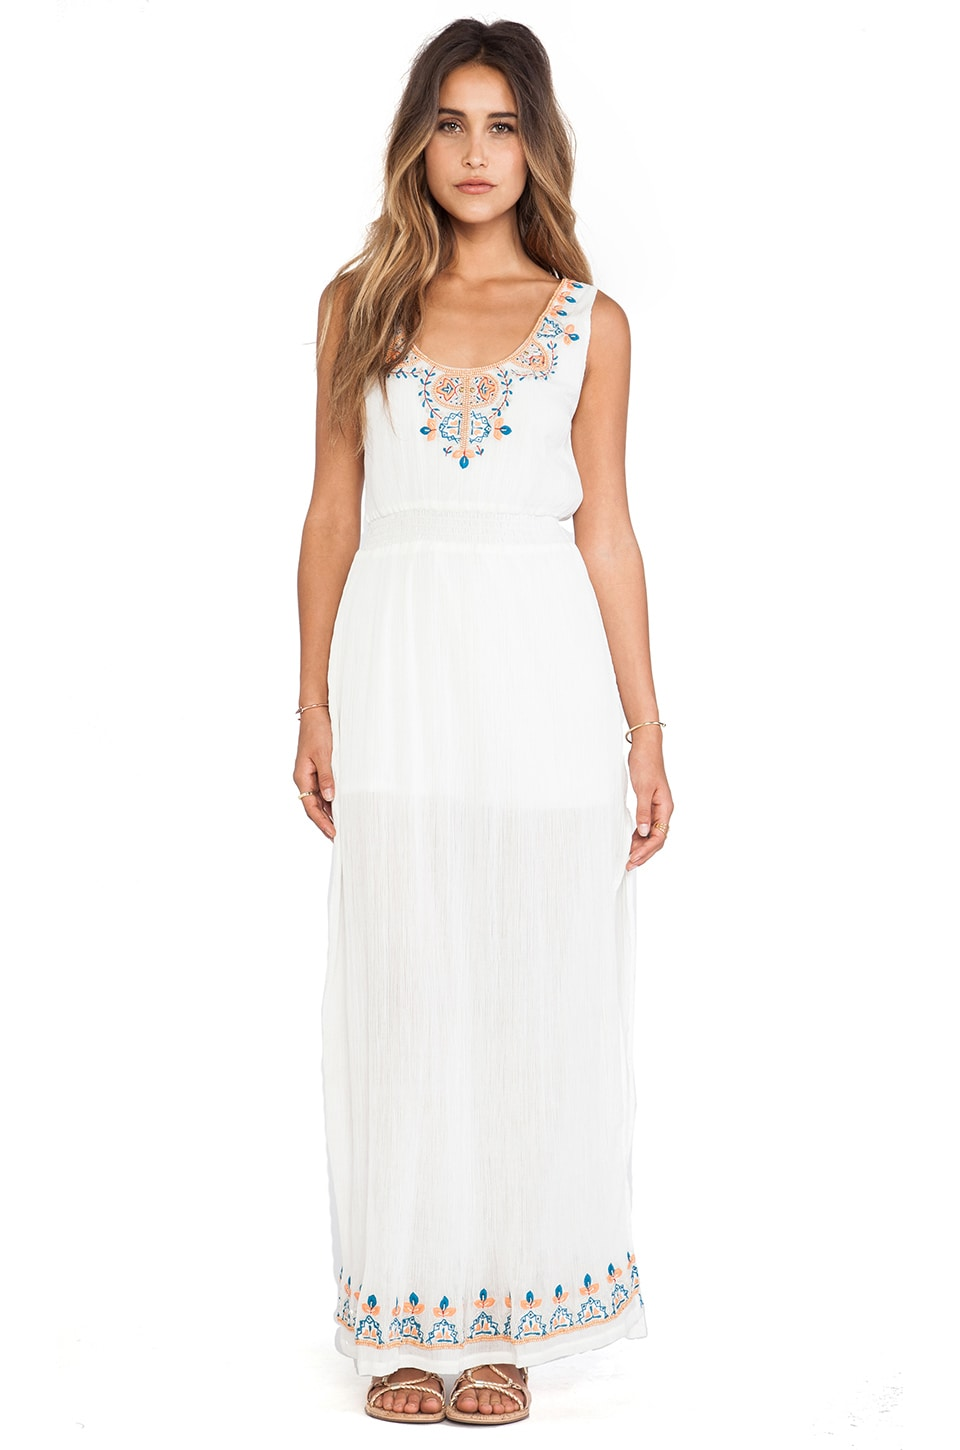 LA Made Playa Maxi Dress in White